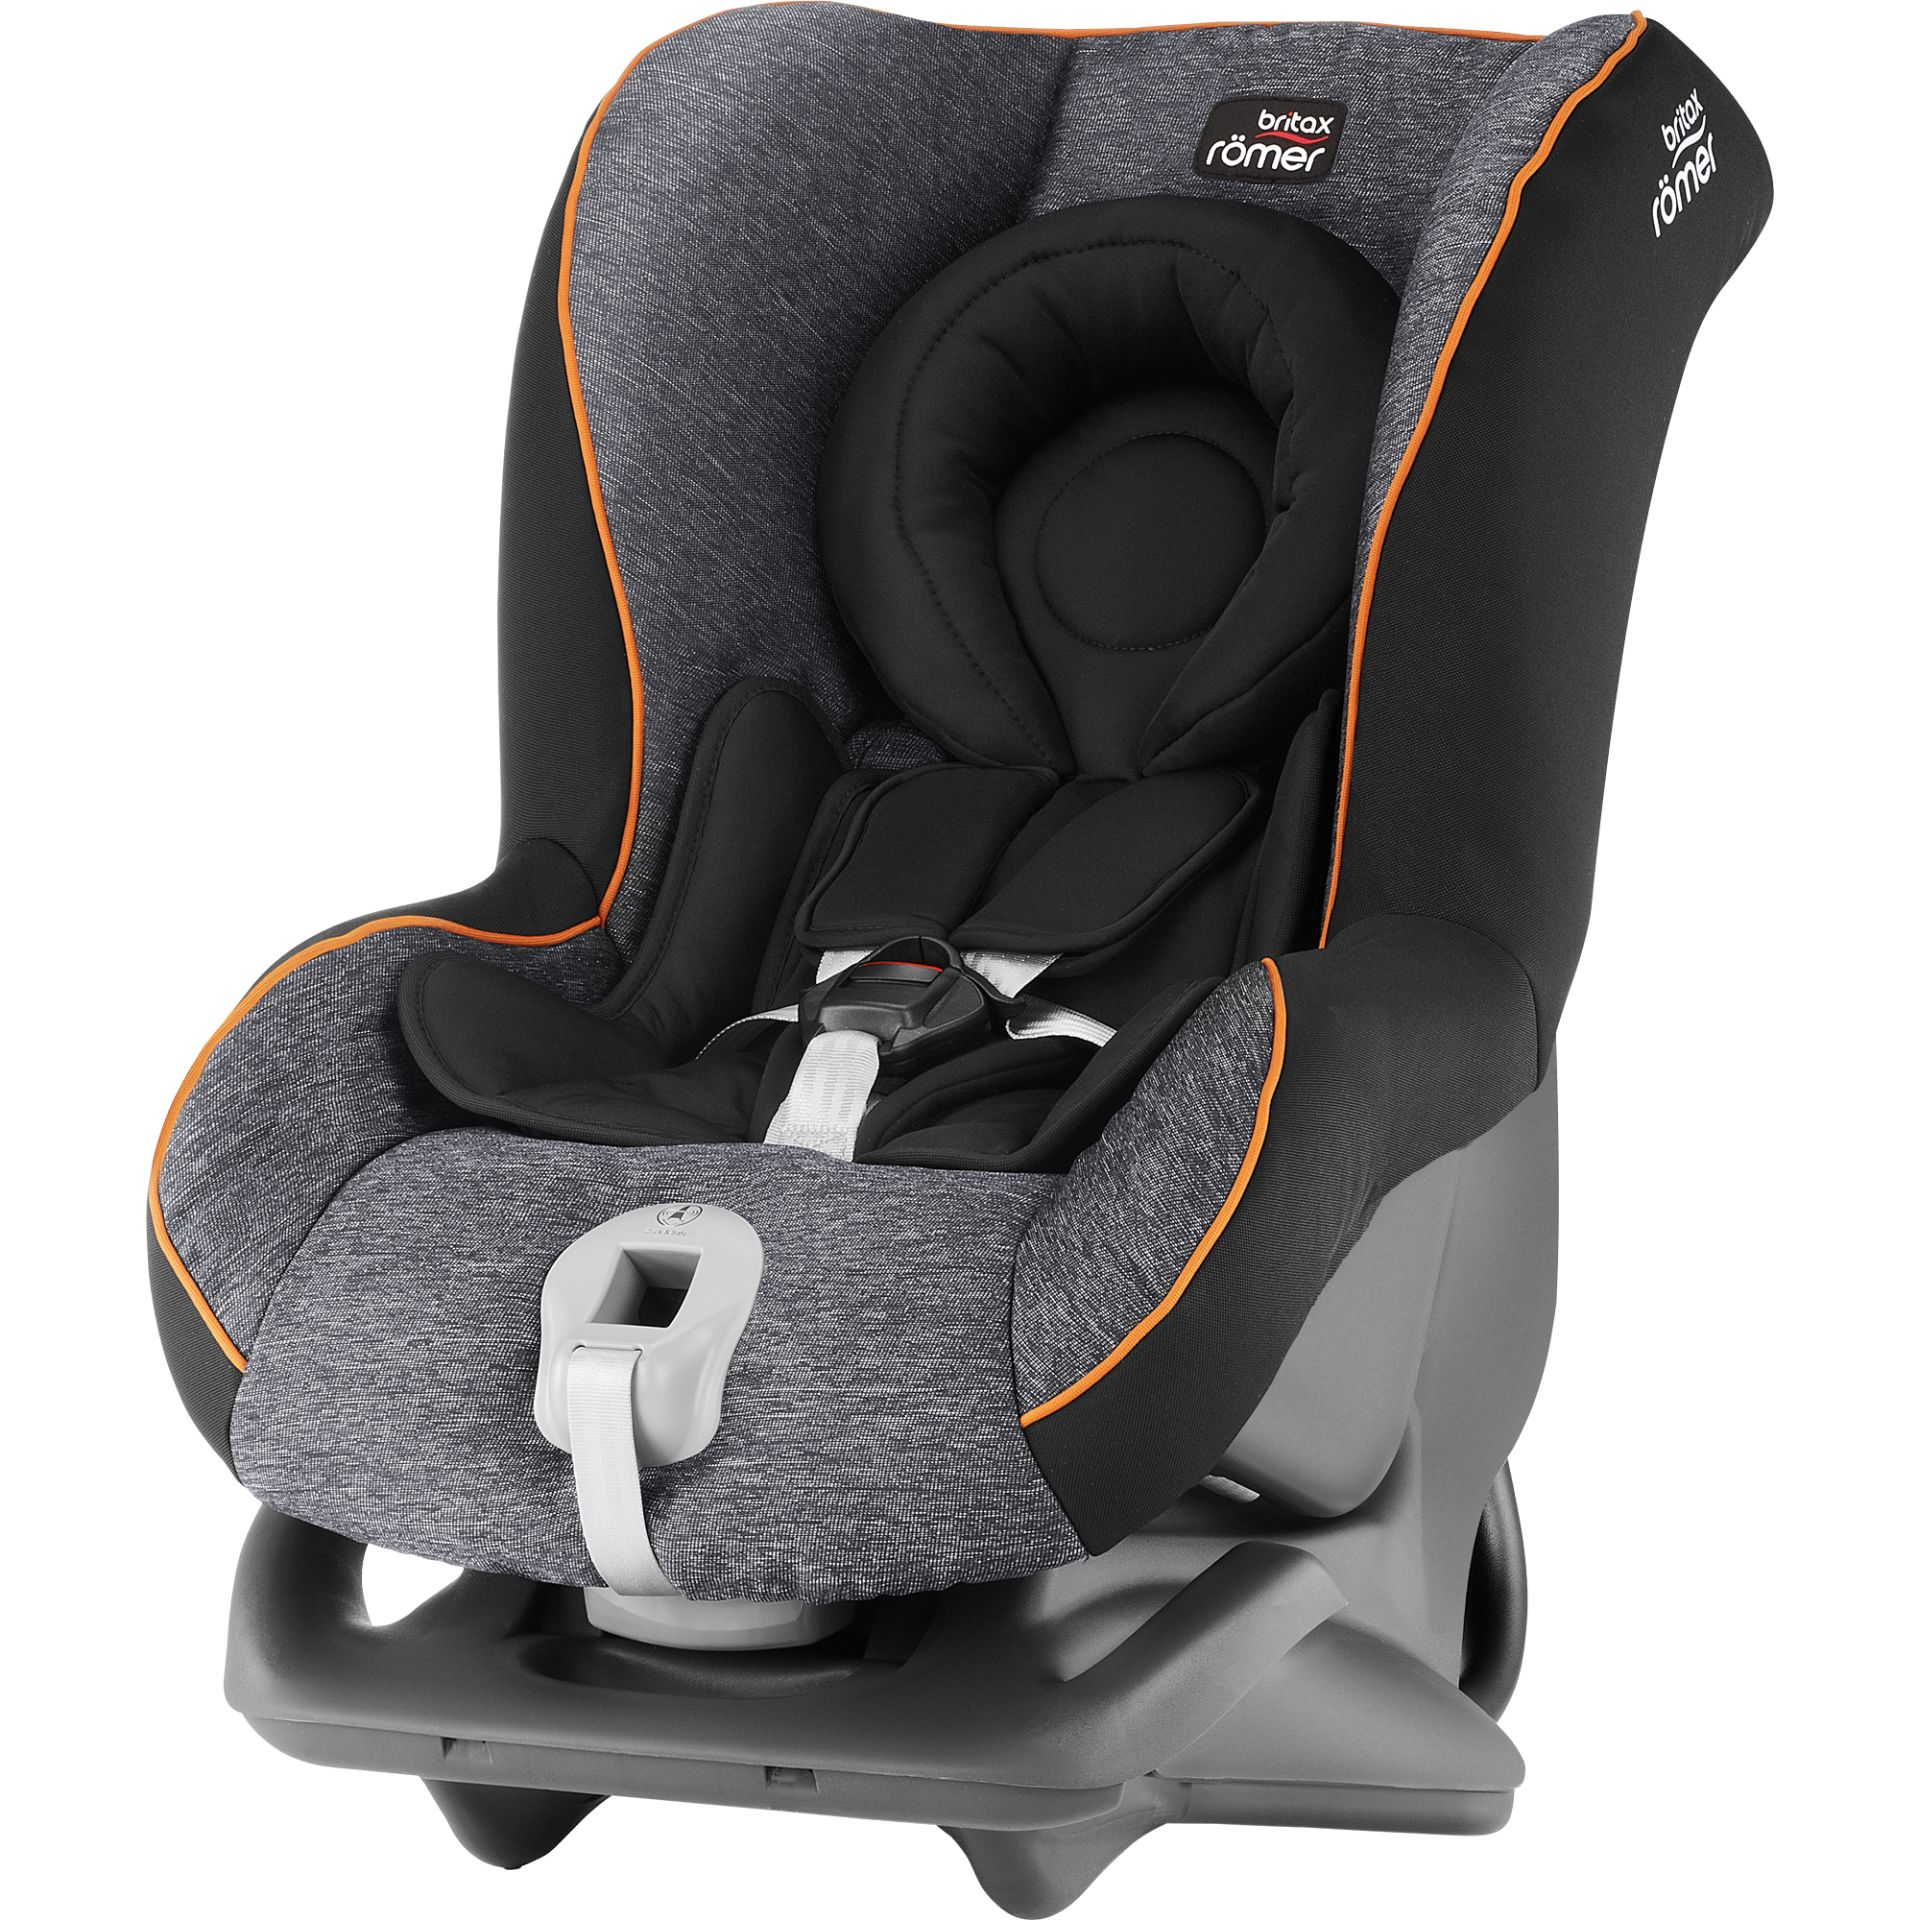 Where To Buy Britax Car Seat Covers